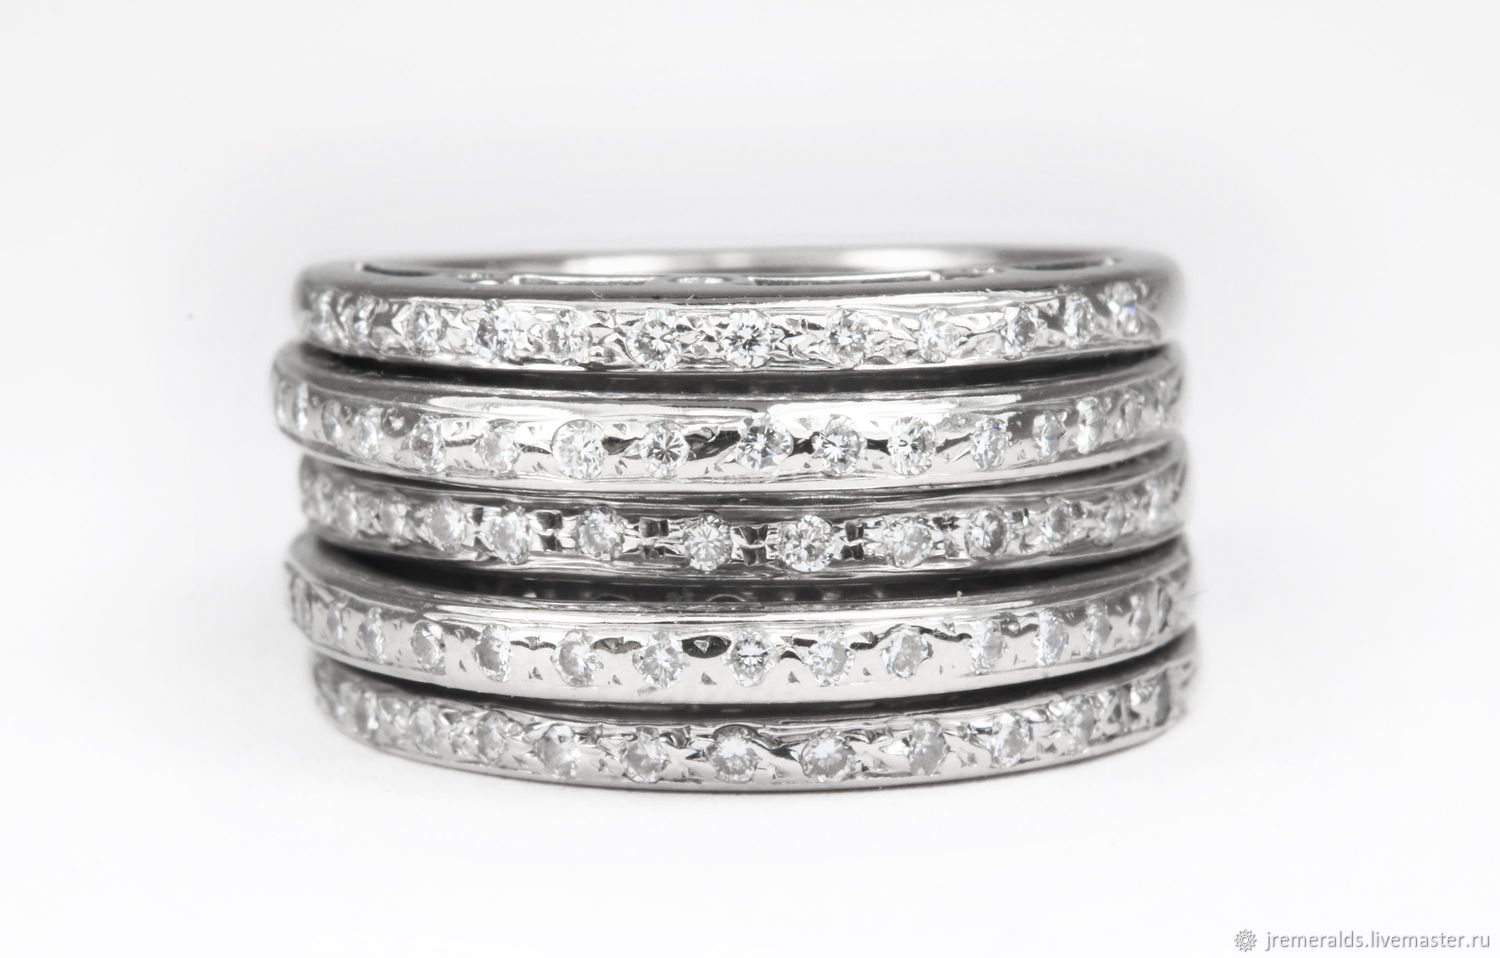 62fa65a380b0b Diamond Multi Band ring 14K White Gold, Five Row Diamond Ring Band, 5 –  shop online on Livemaster with shipping - GNH7VCOM   West Palm Beach